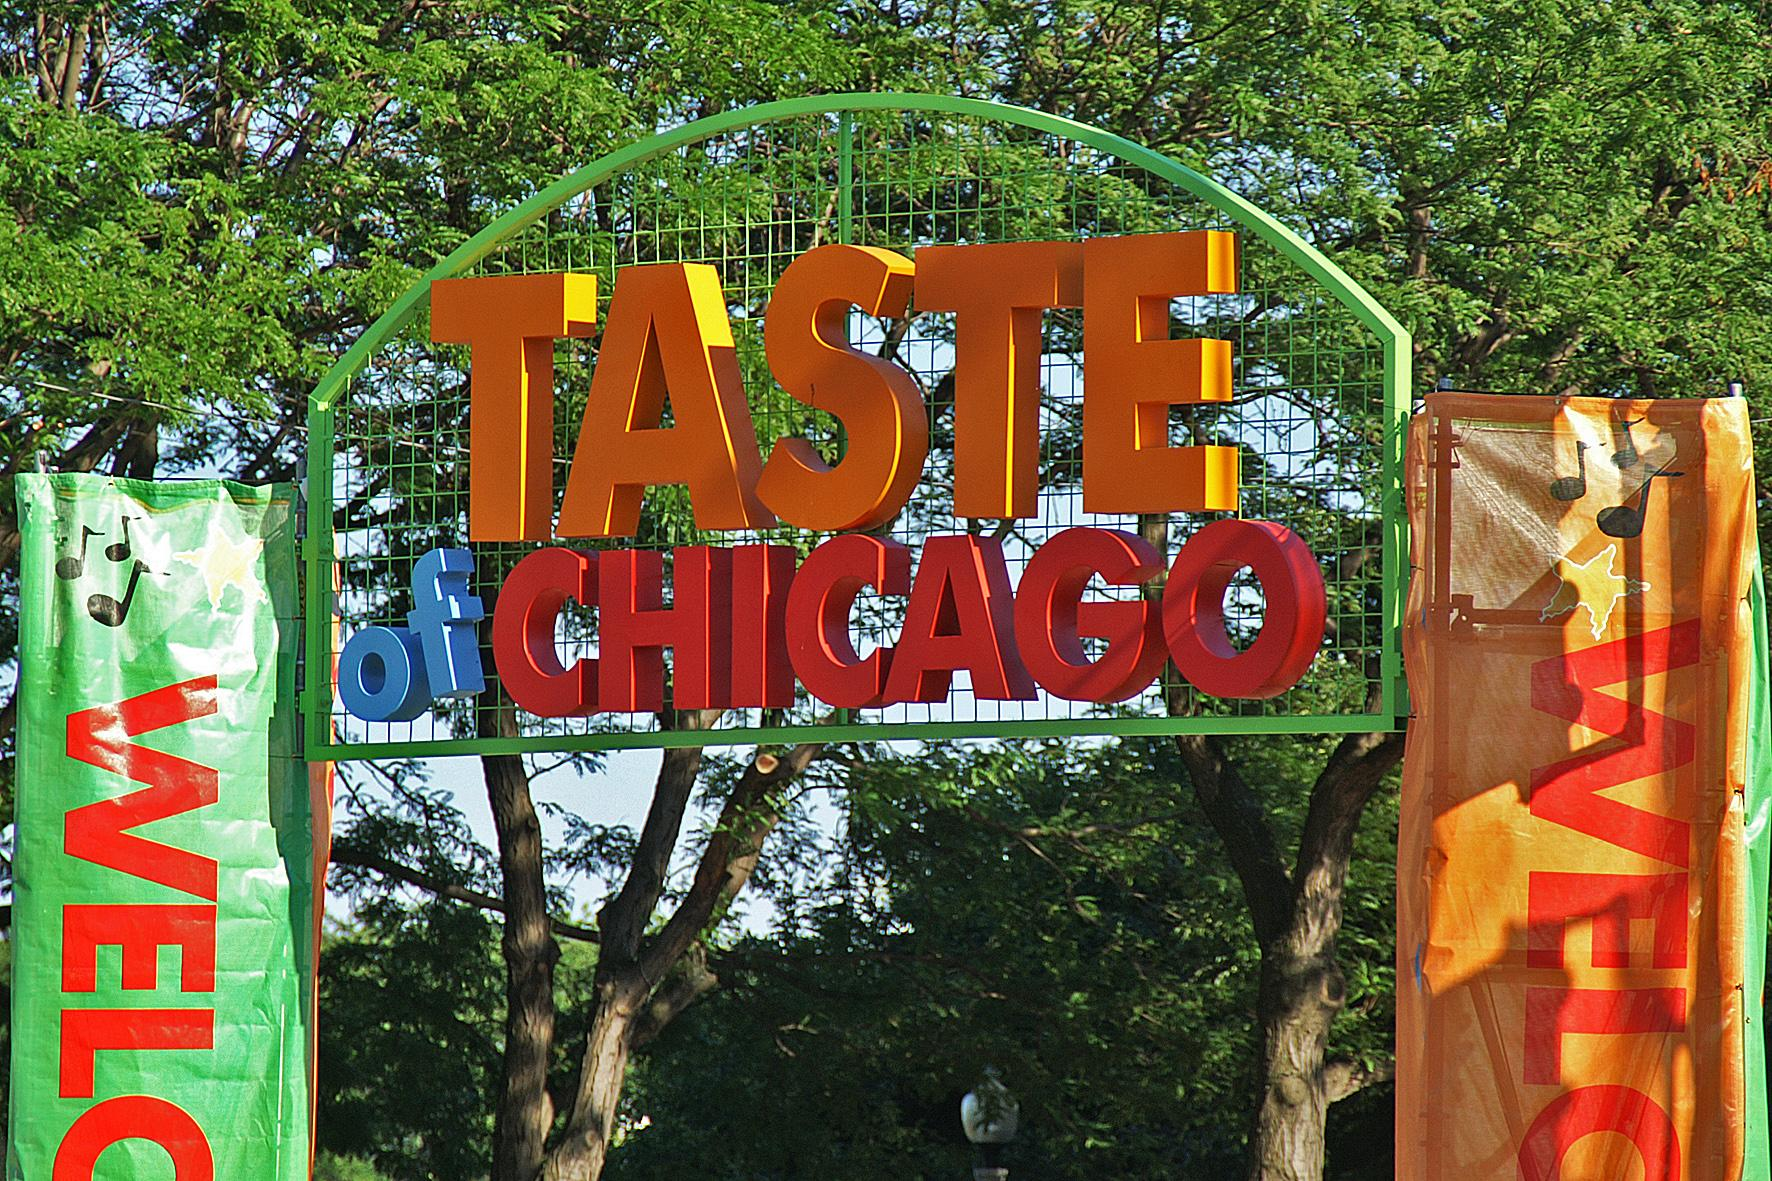 The Taste of Chicago may be the granddaddy of local food fests, but it was not the city's first. (Peter F. / Flickr)